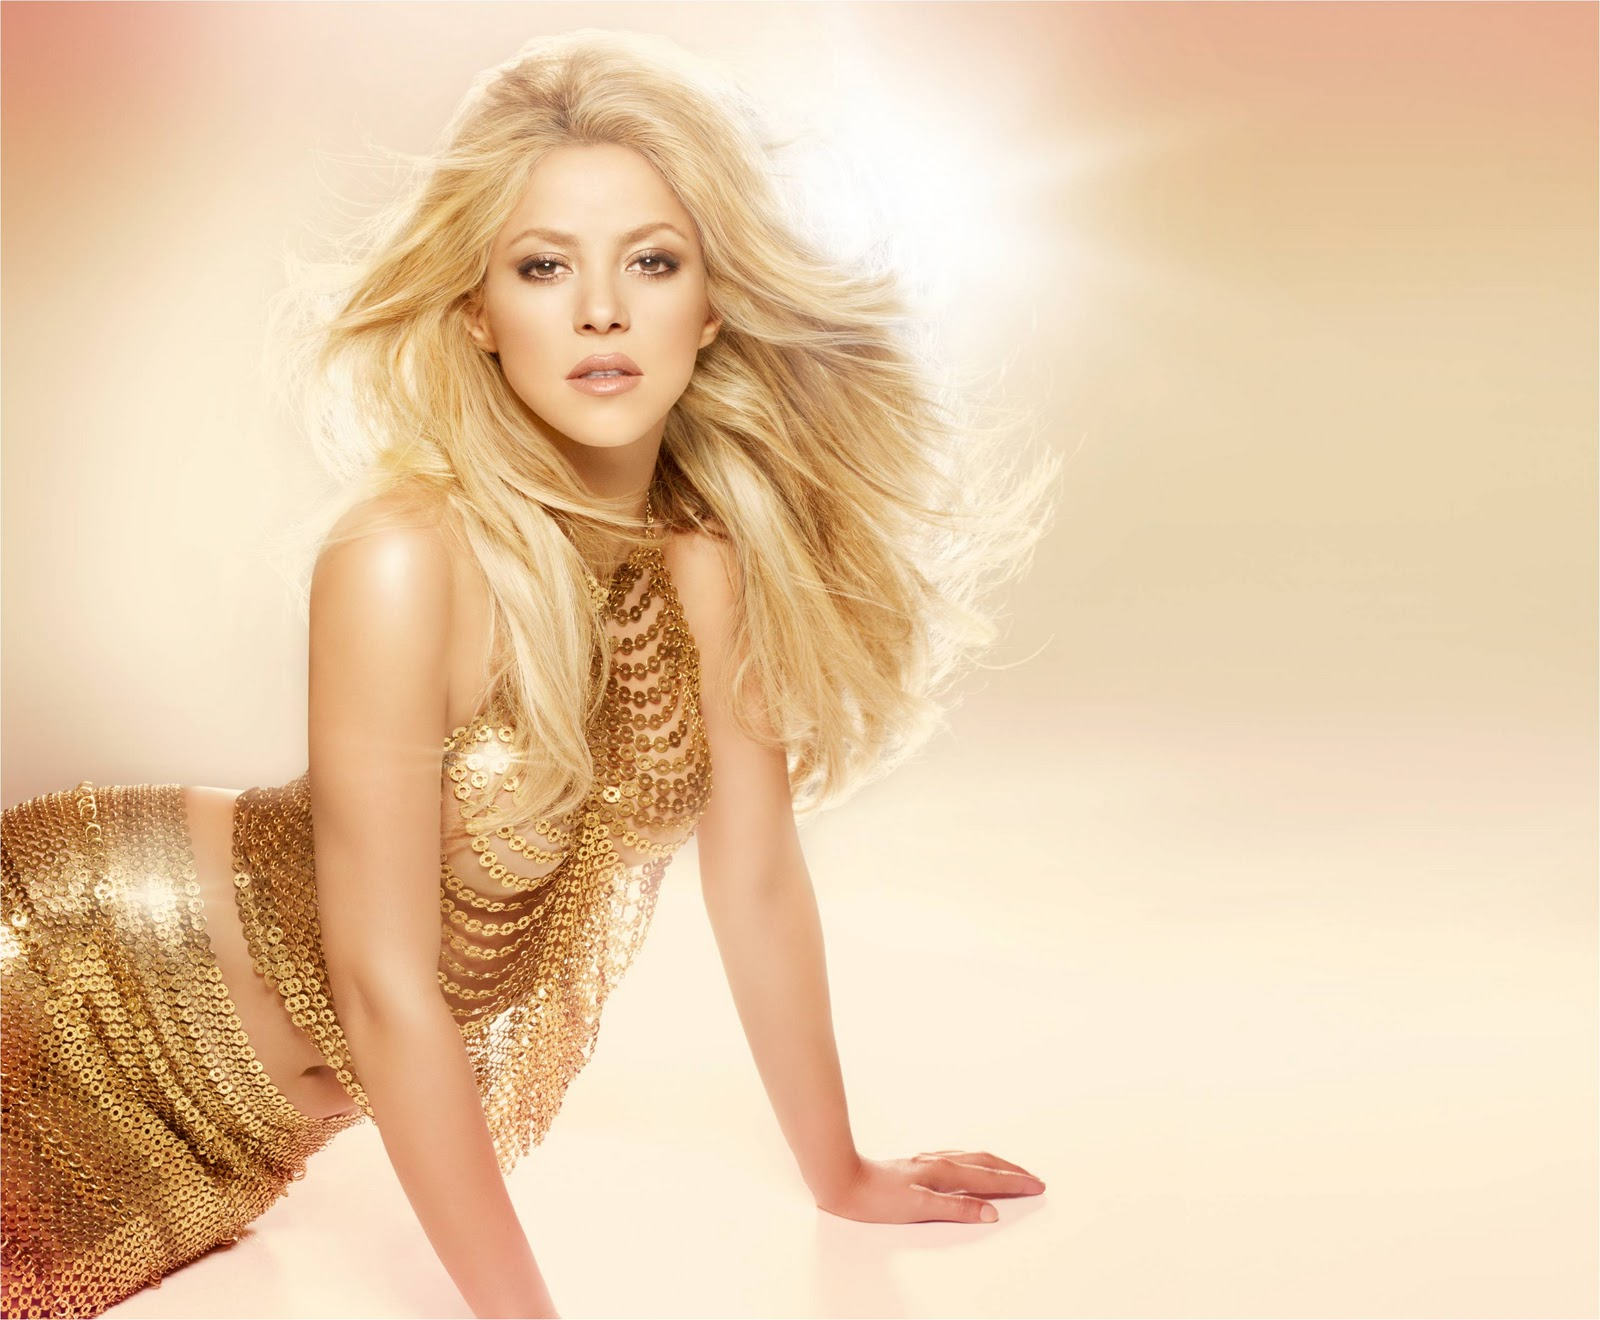 the life and musical career of latin girl shakira Shakira is a colombian singer-songwriter, musical / musician, record producer and dancer she is one of latin america's top stars and is very popular international / internationally  she is the highest-selling colombian artist of all / every time.